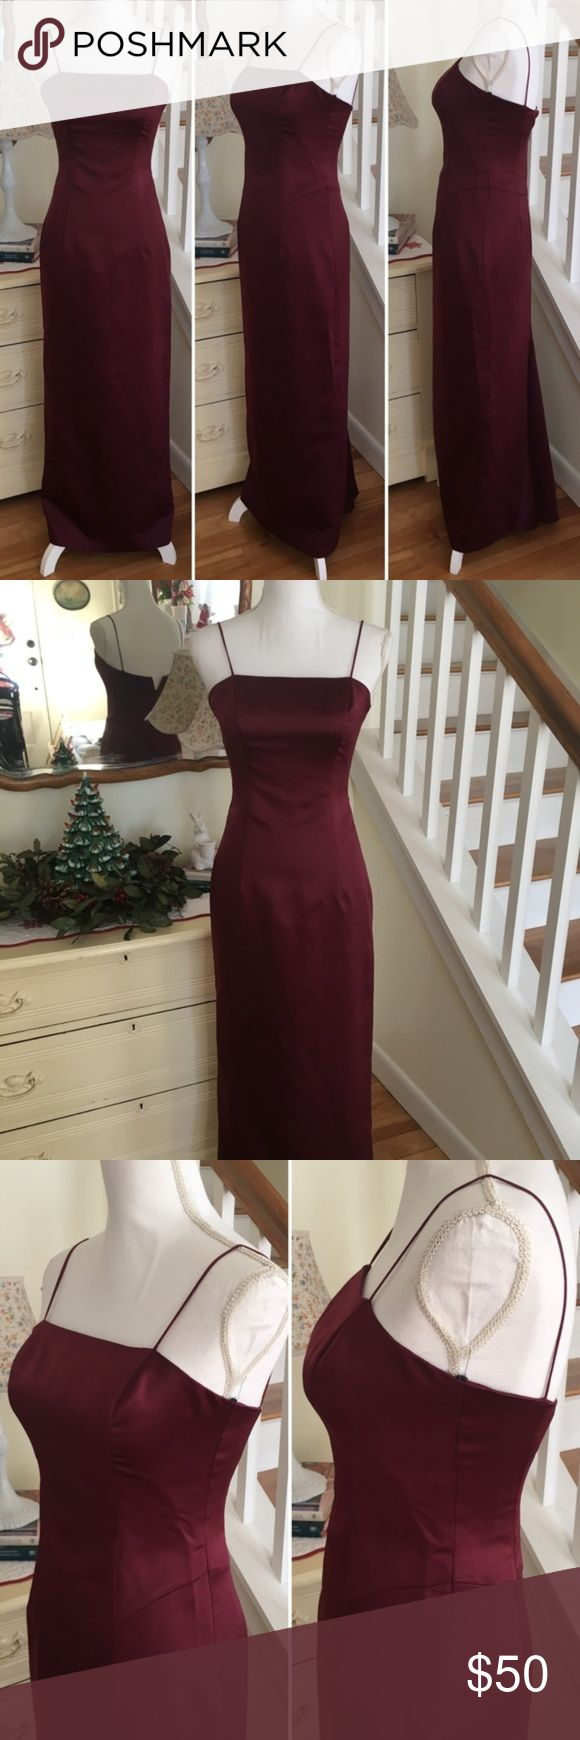 "After Six Cranberry Evening Bridesmaid Gown This floor length, cranberry colored evening gown from After 6 features spaghetti straps and a back zipper (zipper goes all the way up, mannequin was too large). Size: 4. Length: 55"". Chest: 15 - 15.5"". Waist: 13.5"". After Six Dresses Wedding"